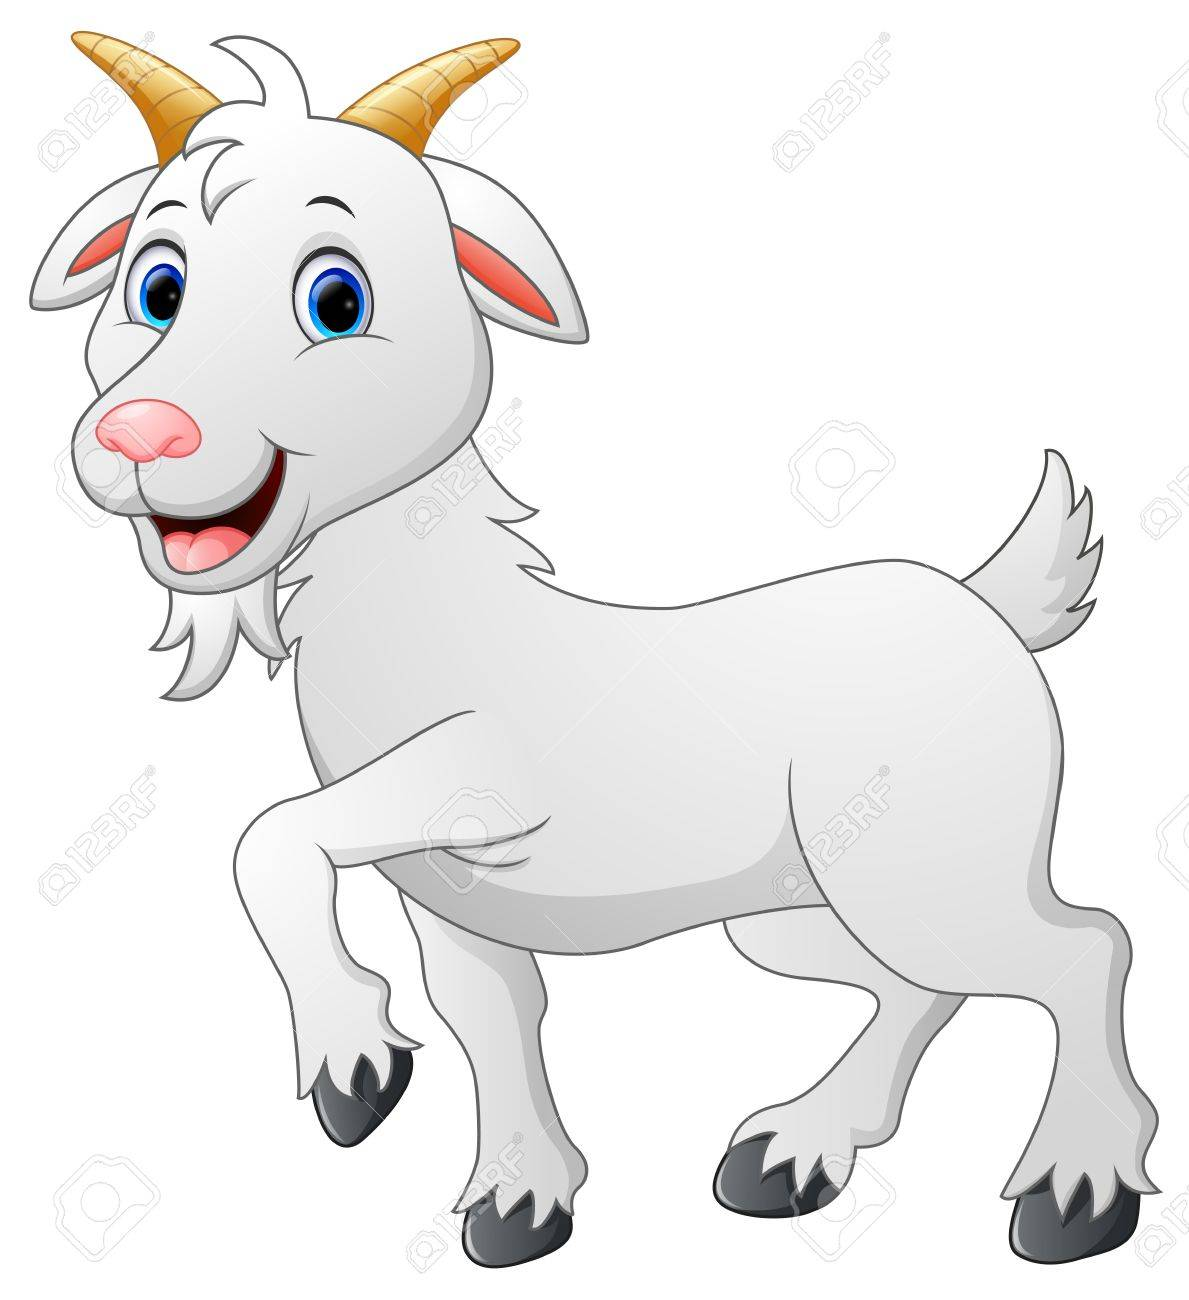 cartoon goat character royalty free cliparts vectors and stock rh 123rf com cute goat cartoon pictures funny cartoon goat pictures